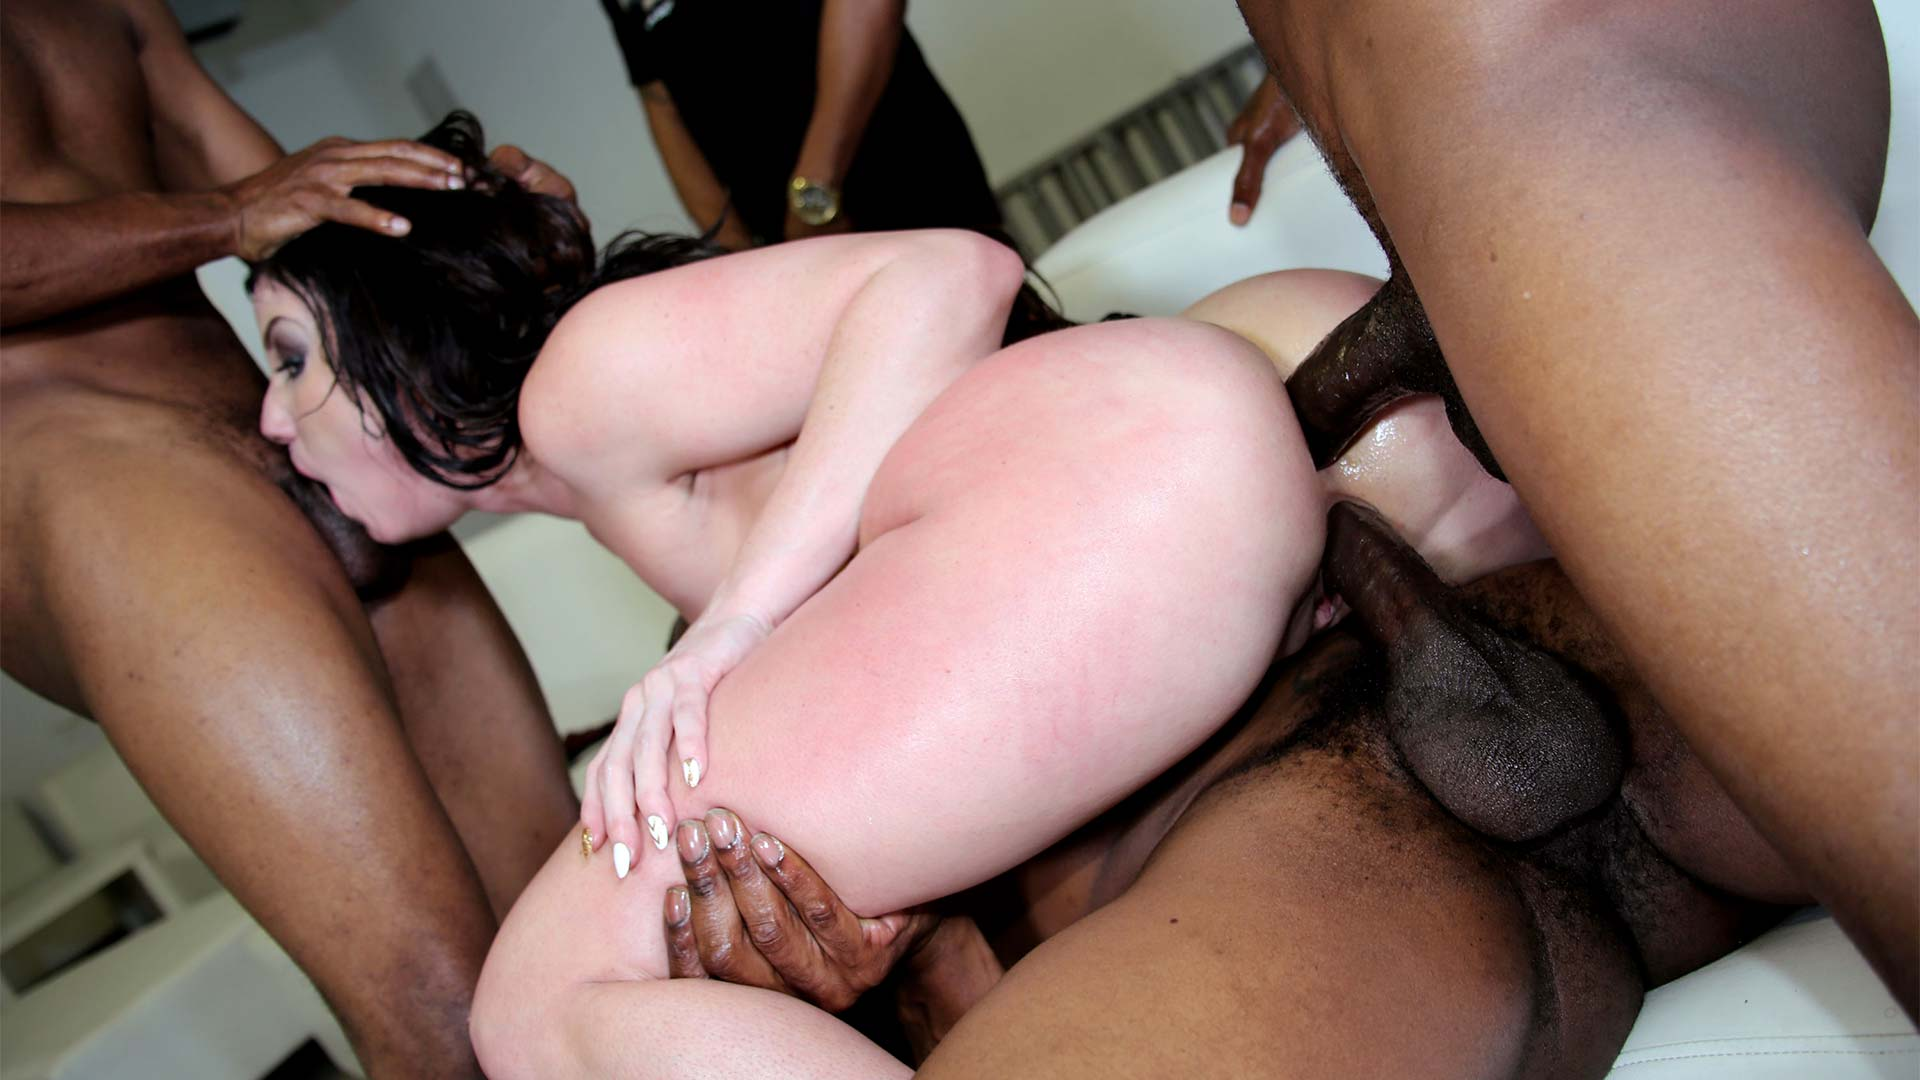 BlacksOnBlondes Jennifer White Interracial Porn